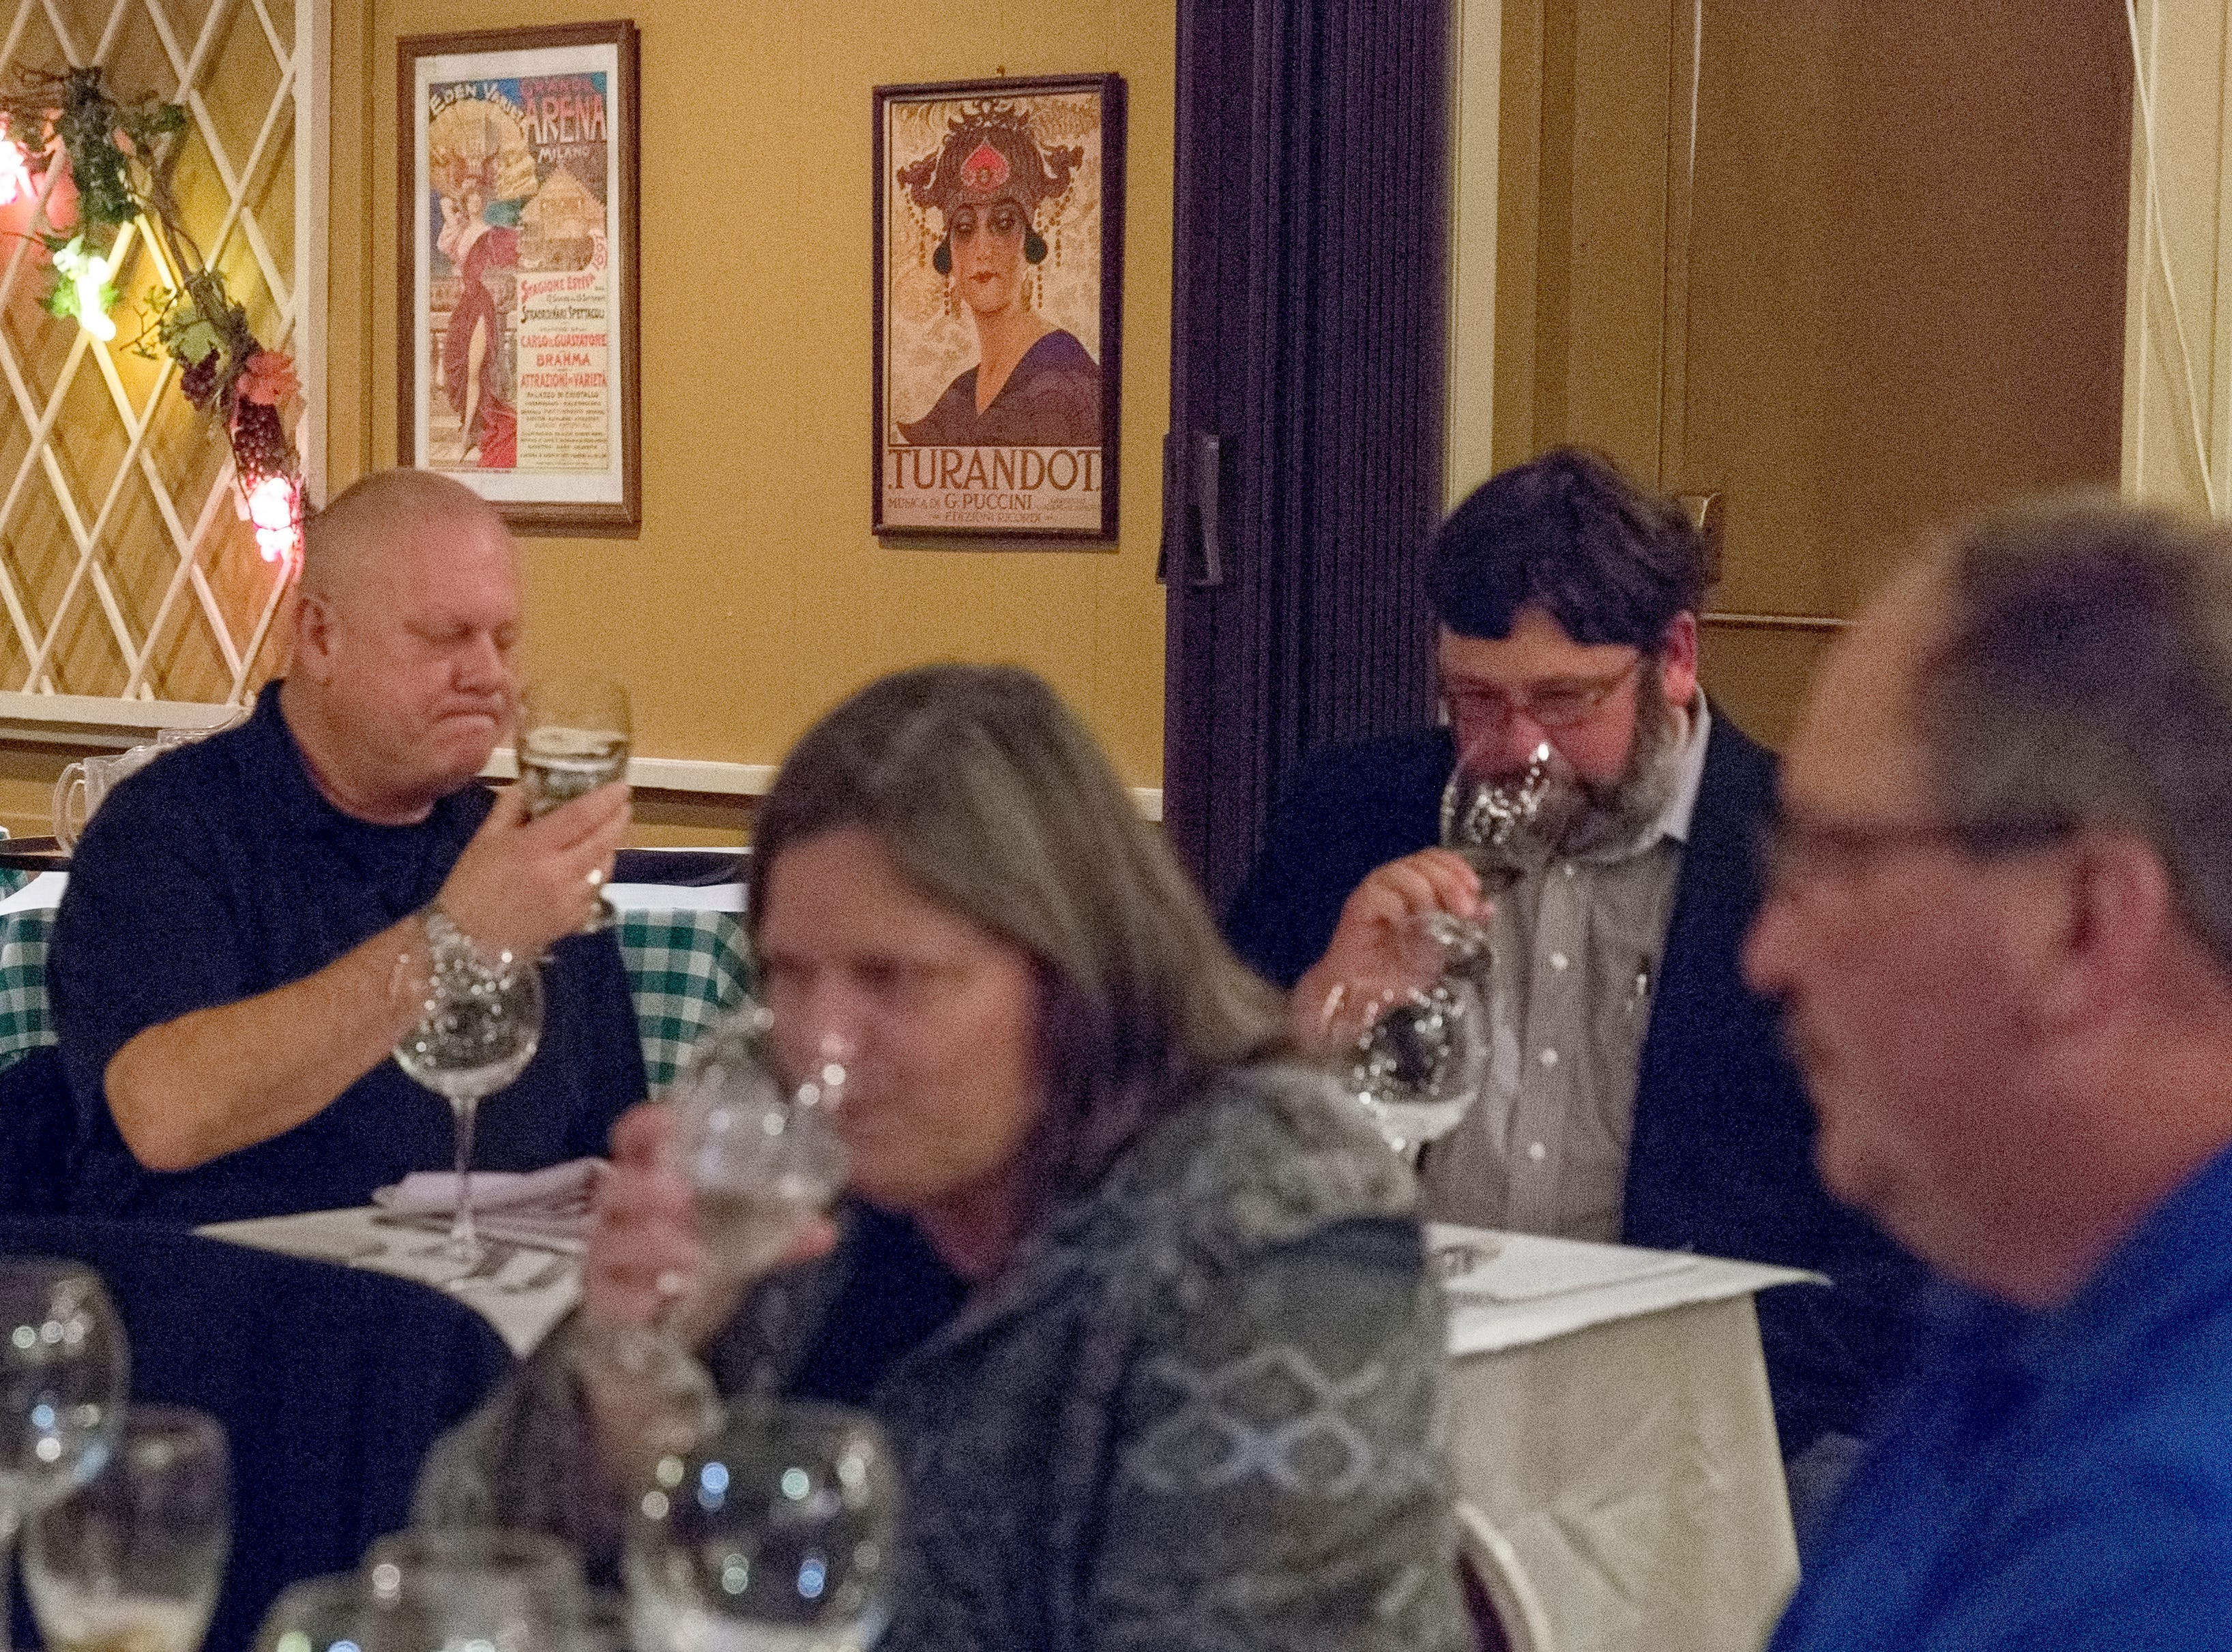 Alan Johns, owner of Party Mart, and David Boggan, Athens Artisan Selections, join in the last wine tasting at Baudo's Thursday night, january 17, 2019.